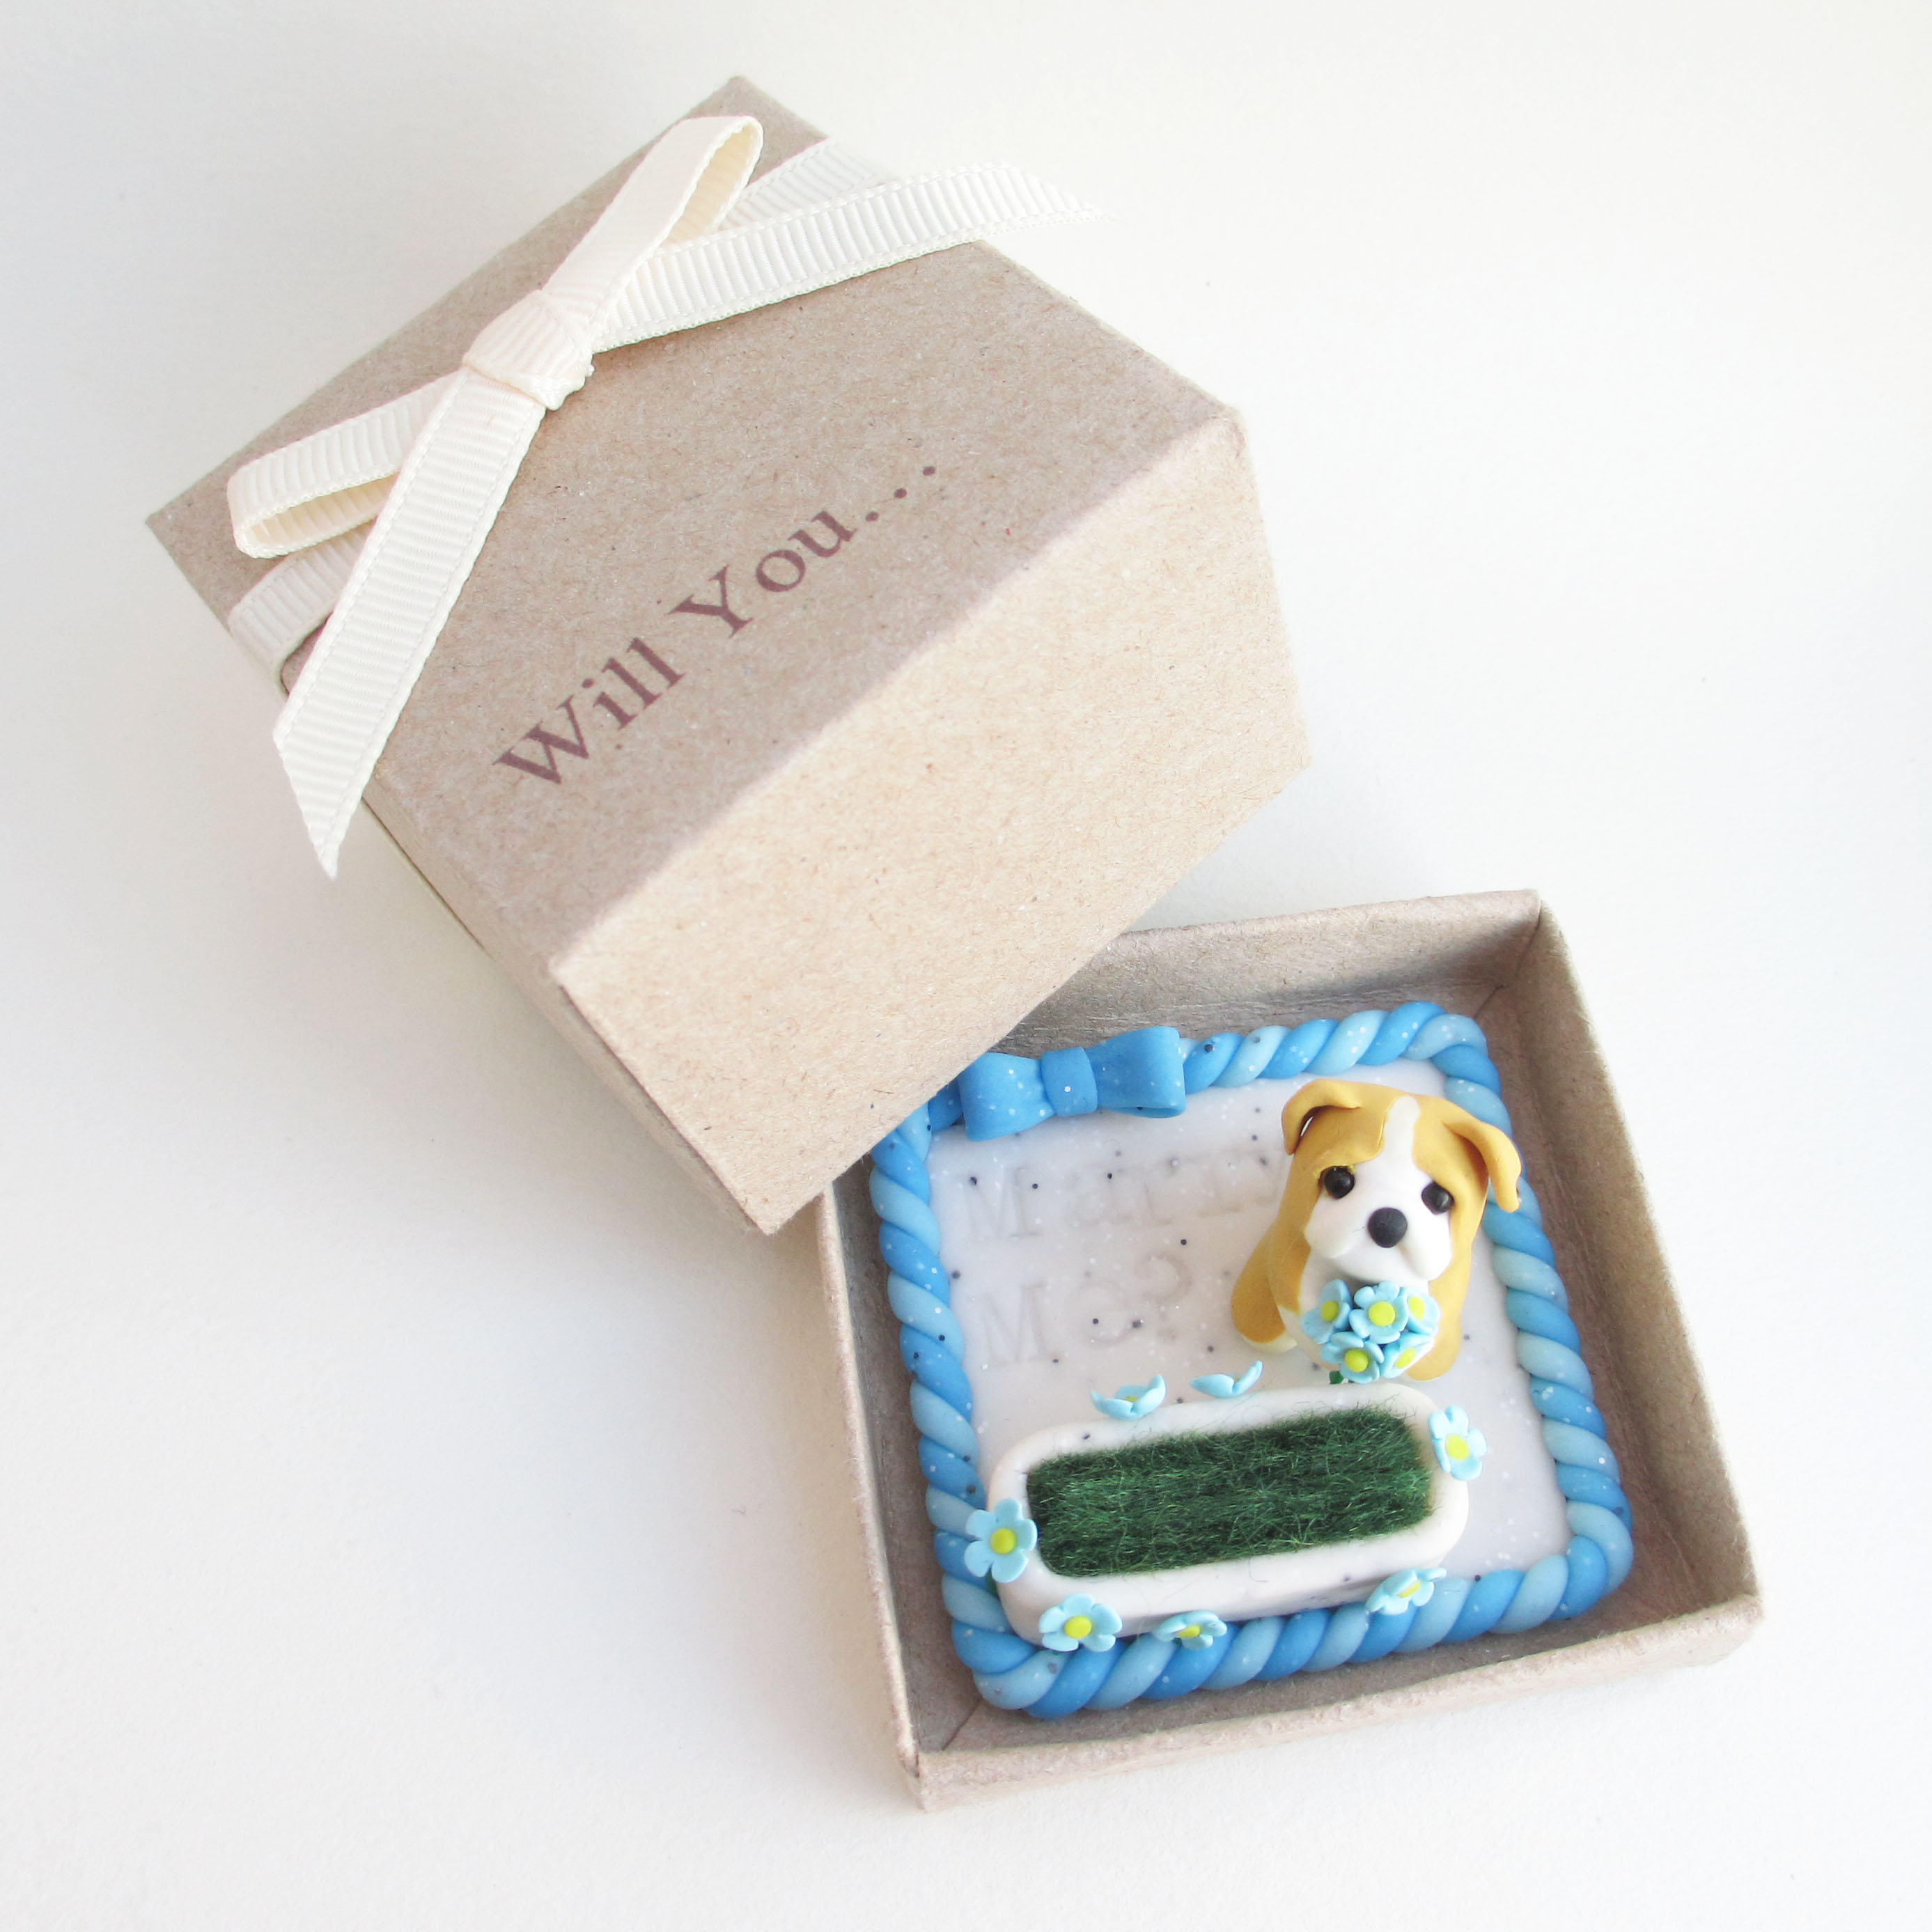 Puppy cute engagement ring box